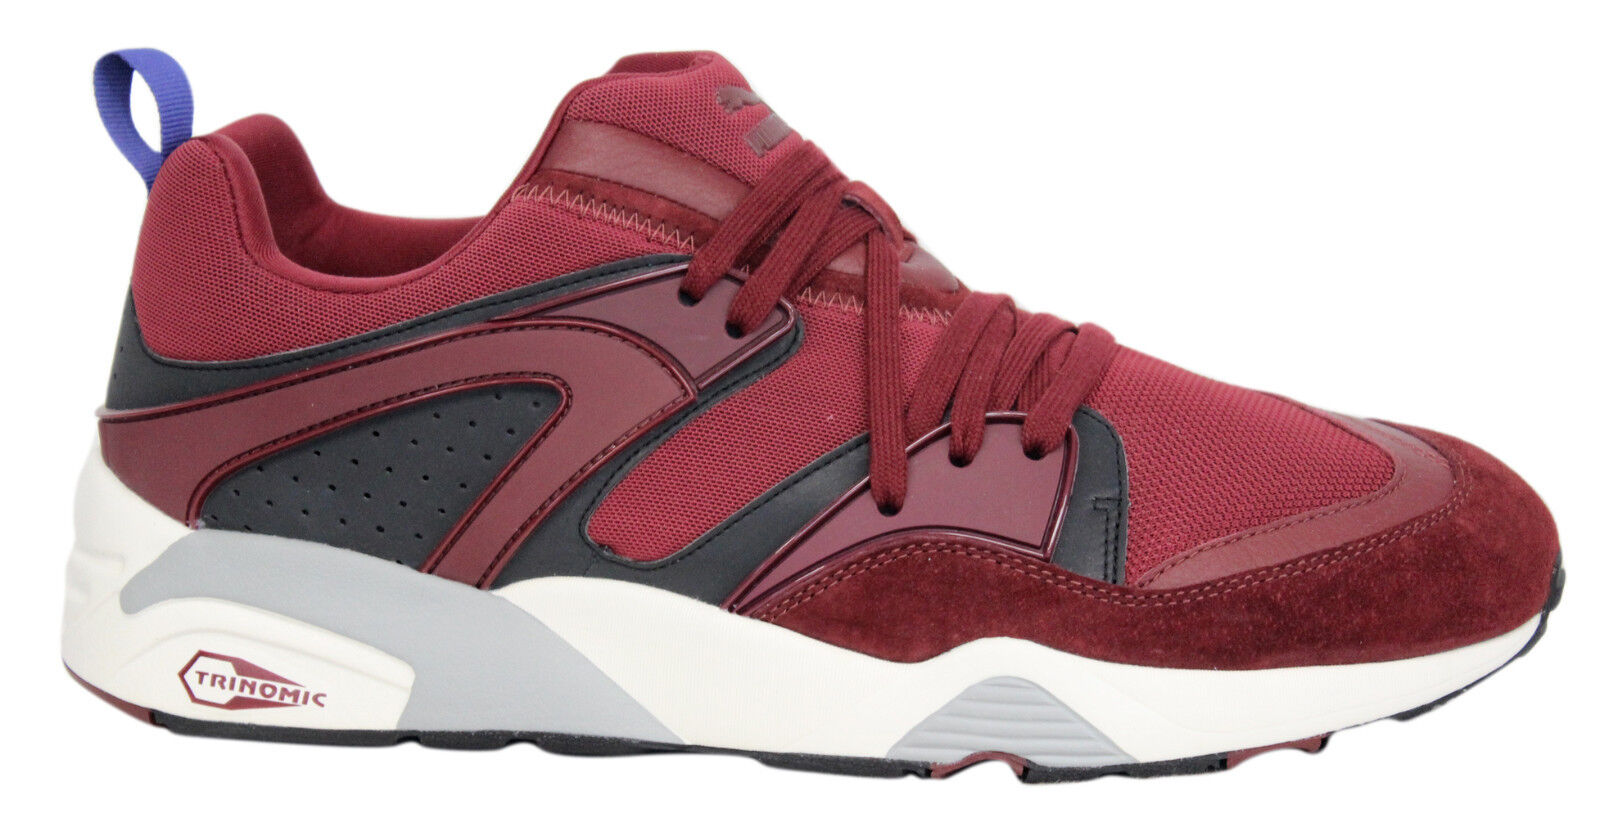 PUMA TRINOMIC FUOCO casual mens Scarpe da ginnastica stringate rosse/Grigio best-selling model of the brand